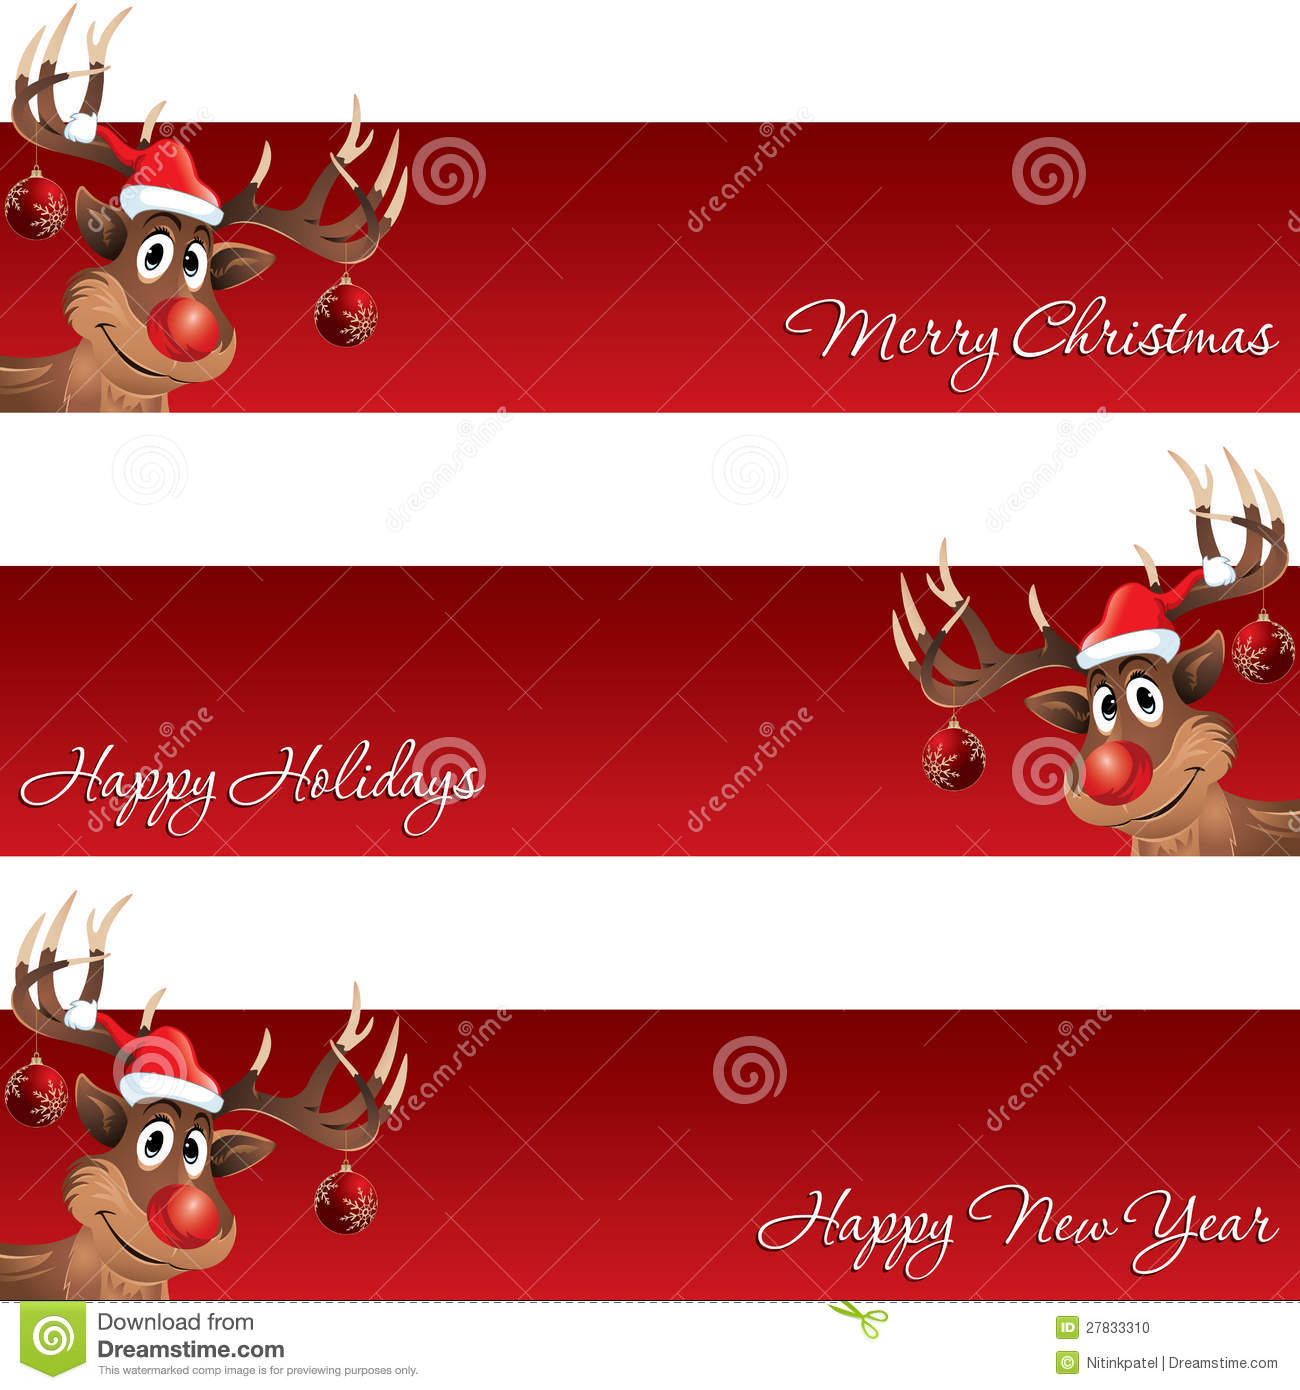 rudolph the reindeer christmas and new year banner